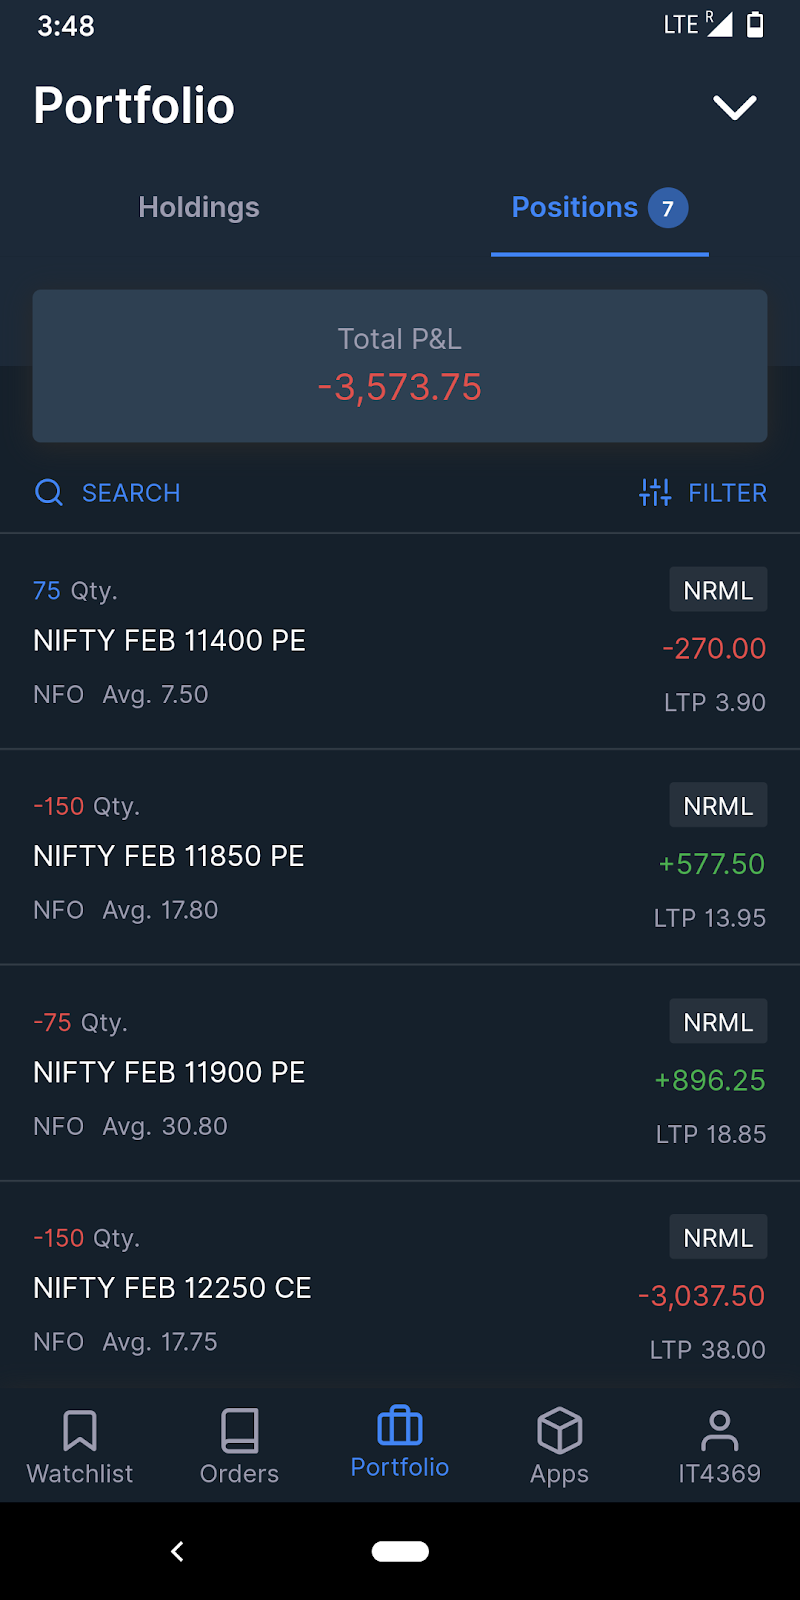 P&L for 19 Feb